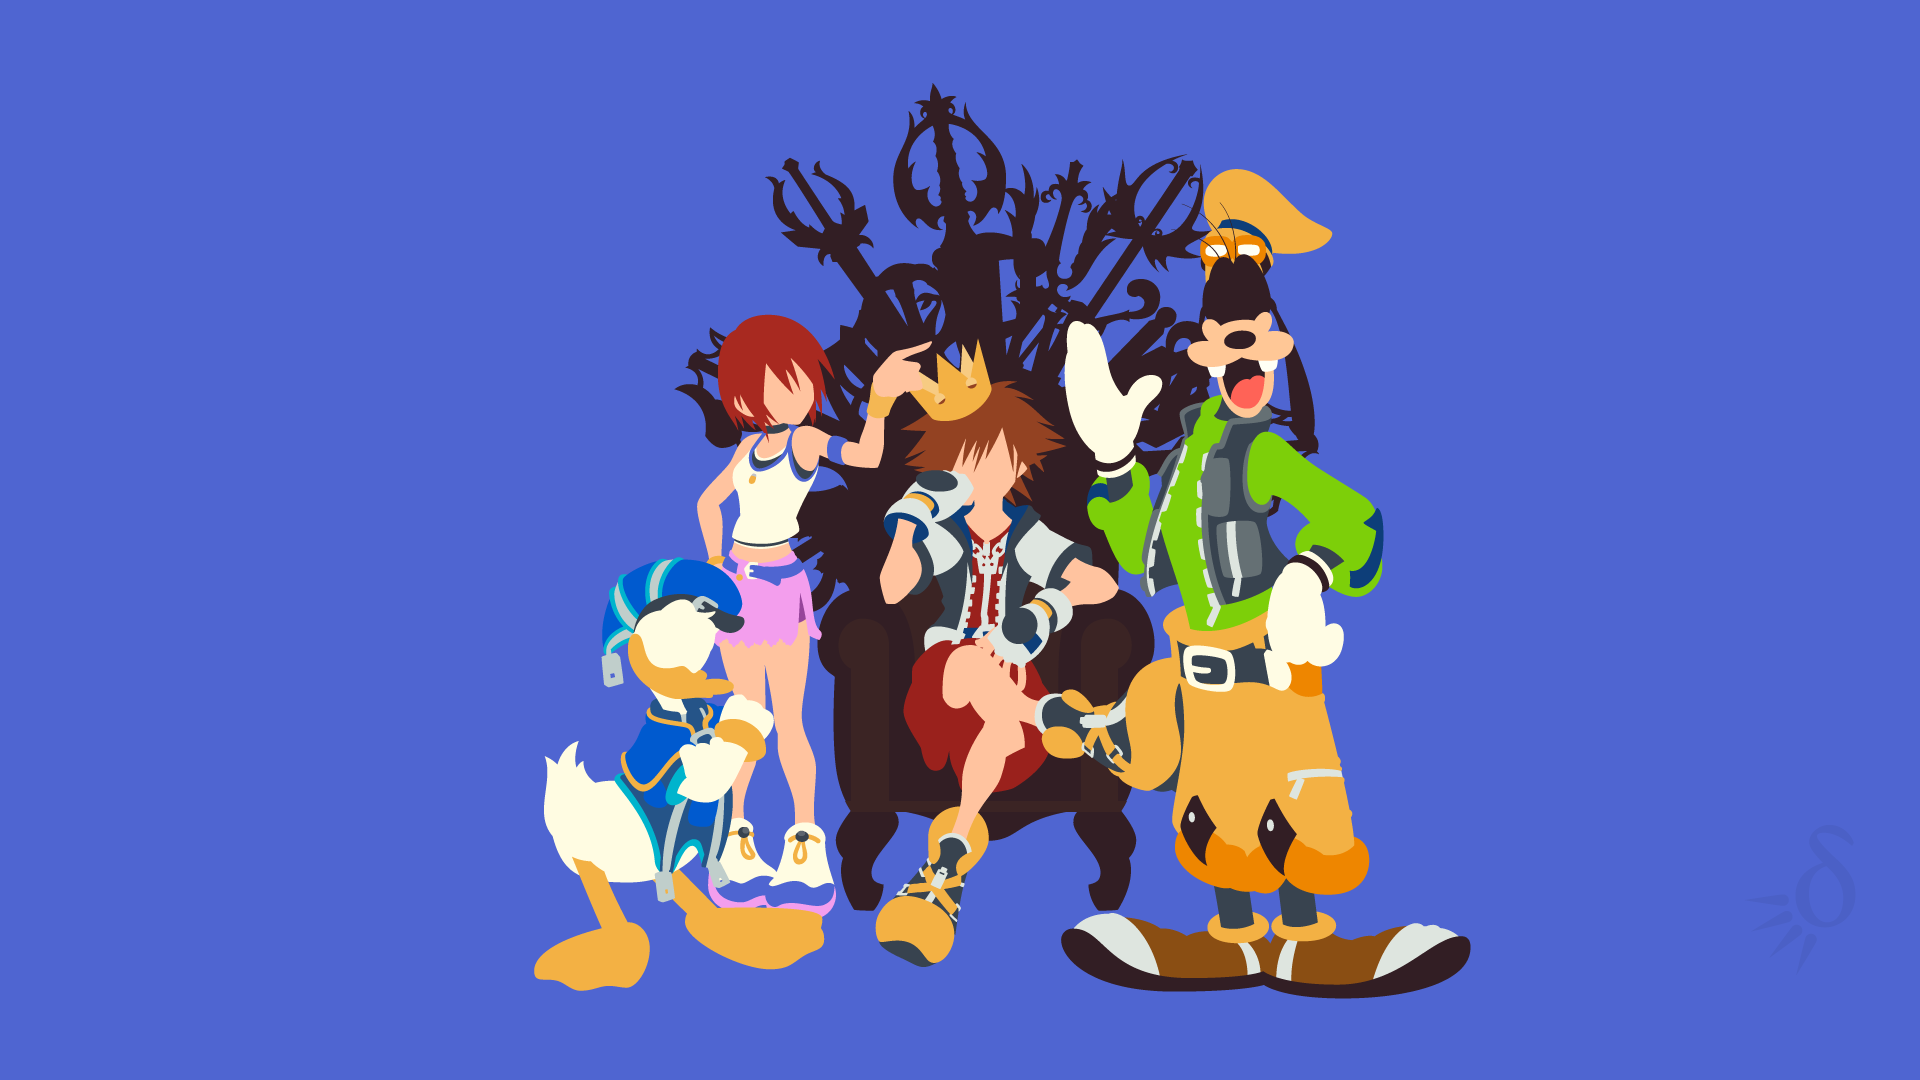 Kingdom Hearts Quotes | My Favorite Quotes From Kingdom Hearts Steemit